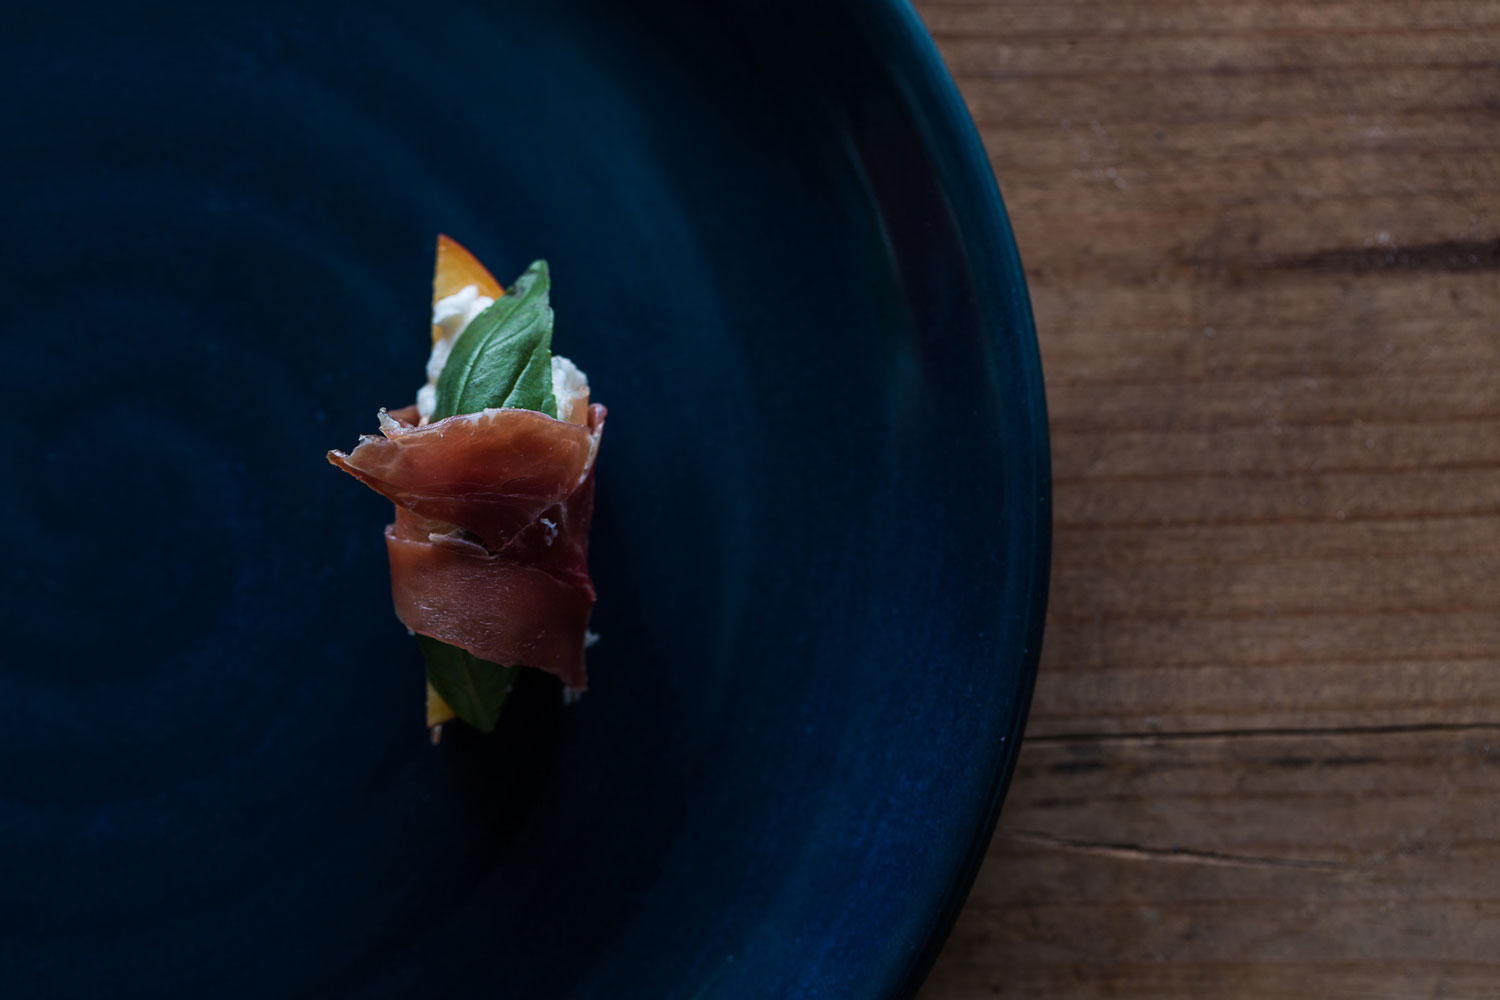 photograph-of-pot-and-pan-culinary-tailoring-prosciutto-photography-by-sarah-anderson.jpg